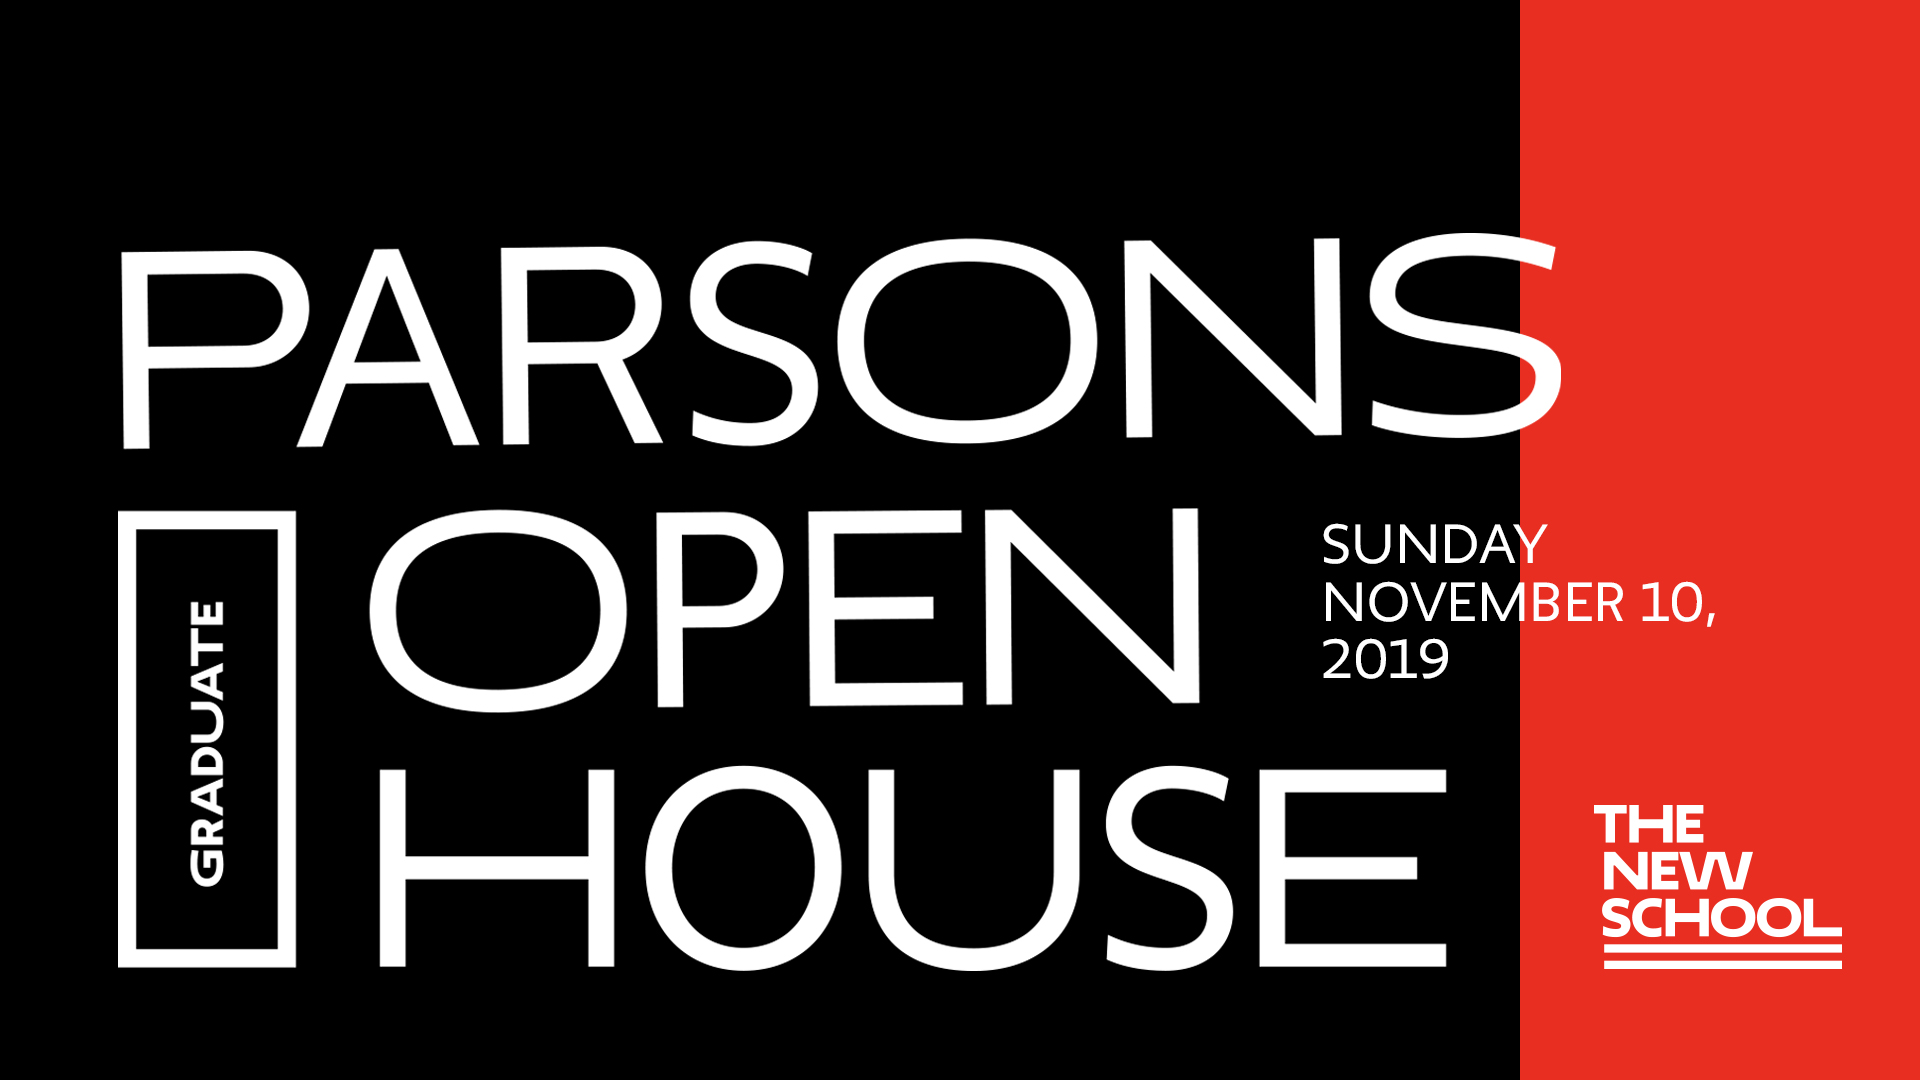 Parsons School of Design Graduate Open House 2019